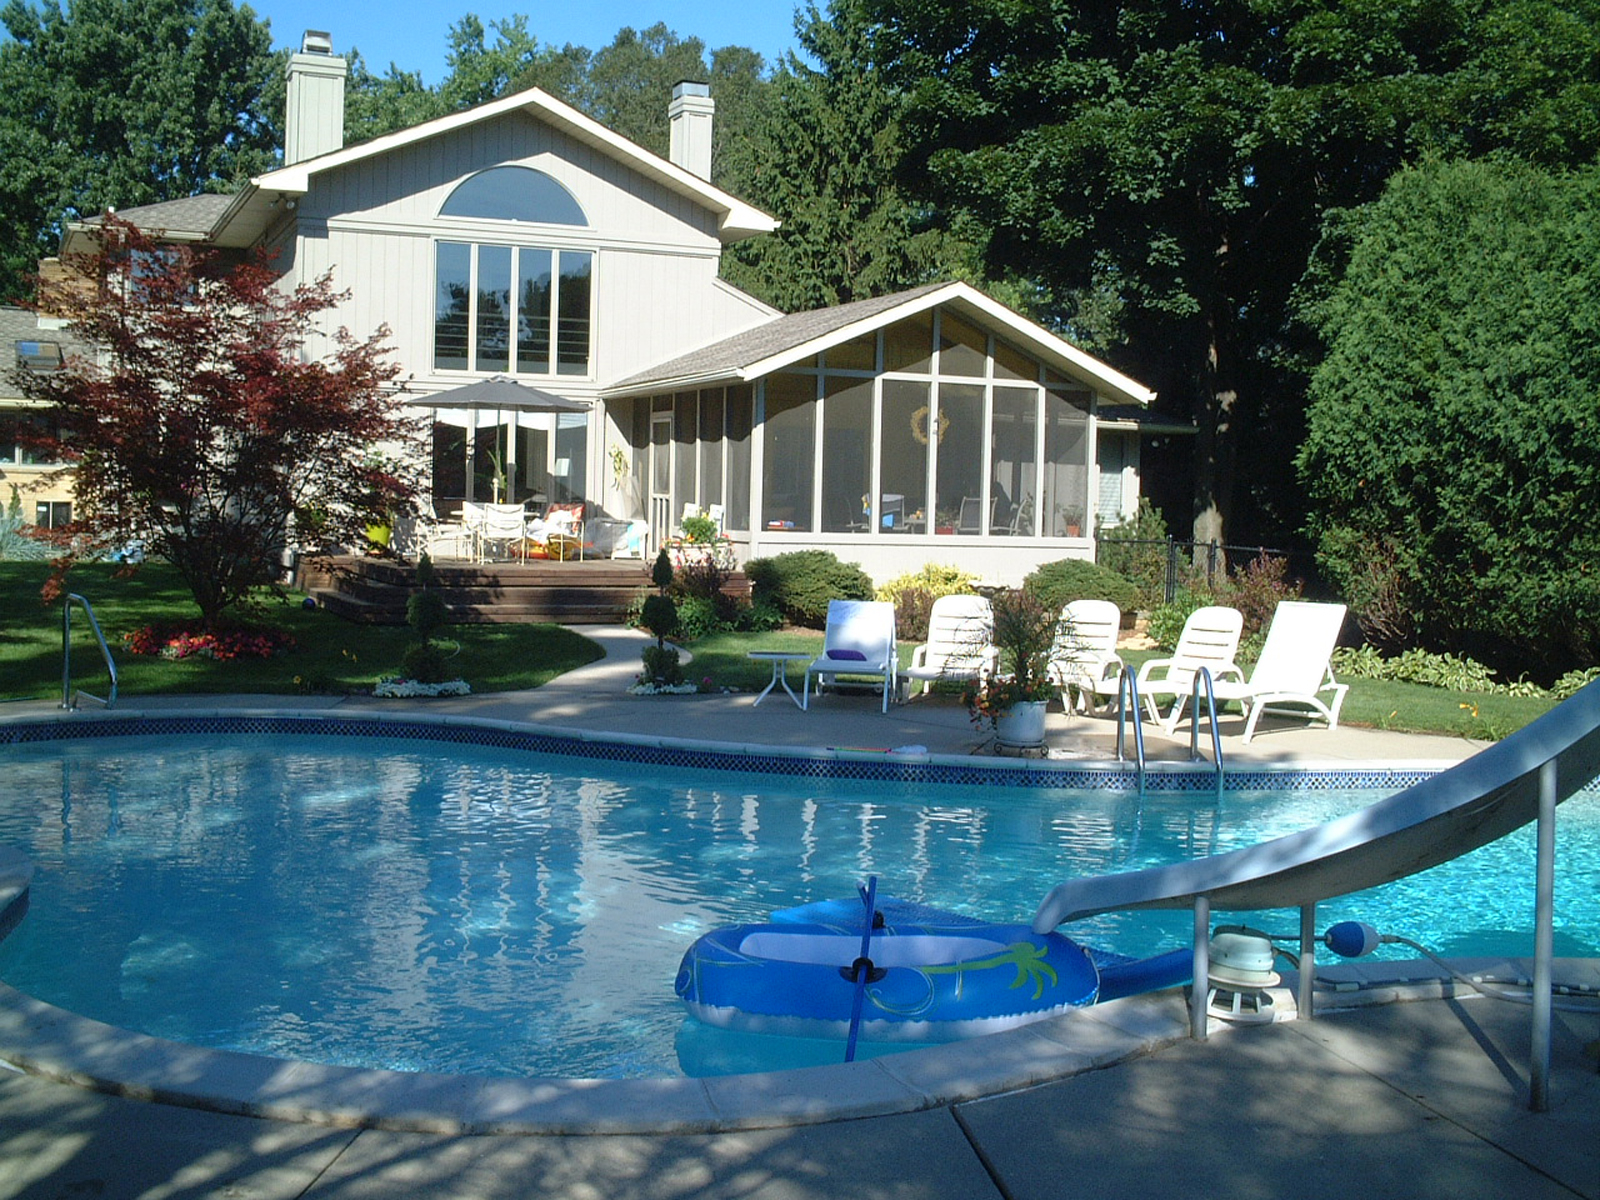 Single Family Home for Sale at Bloomfield Hills 5221 Longmeadow Bloomfield Hills, Michigan 48304 United States